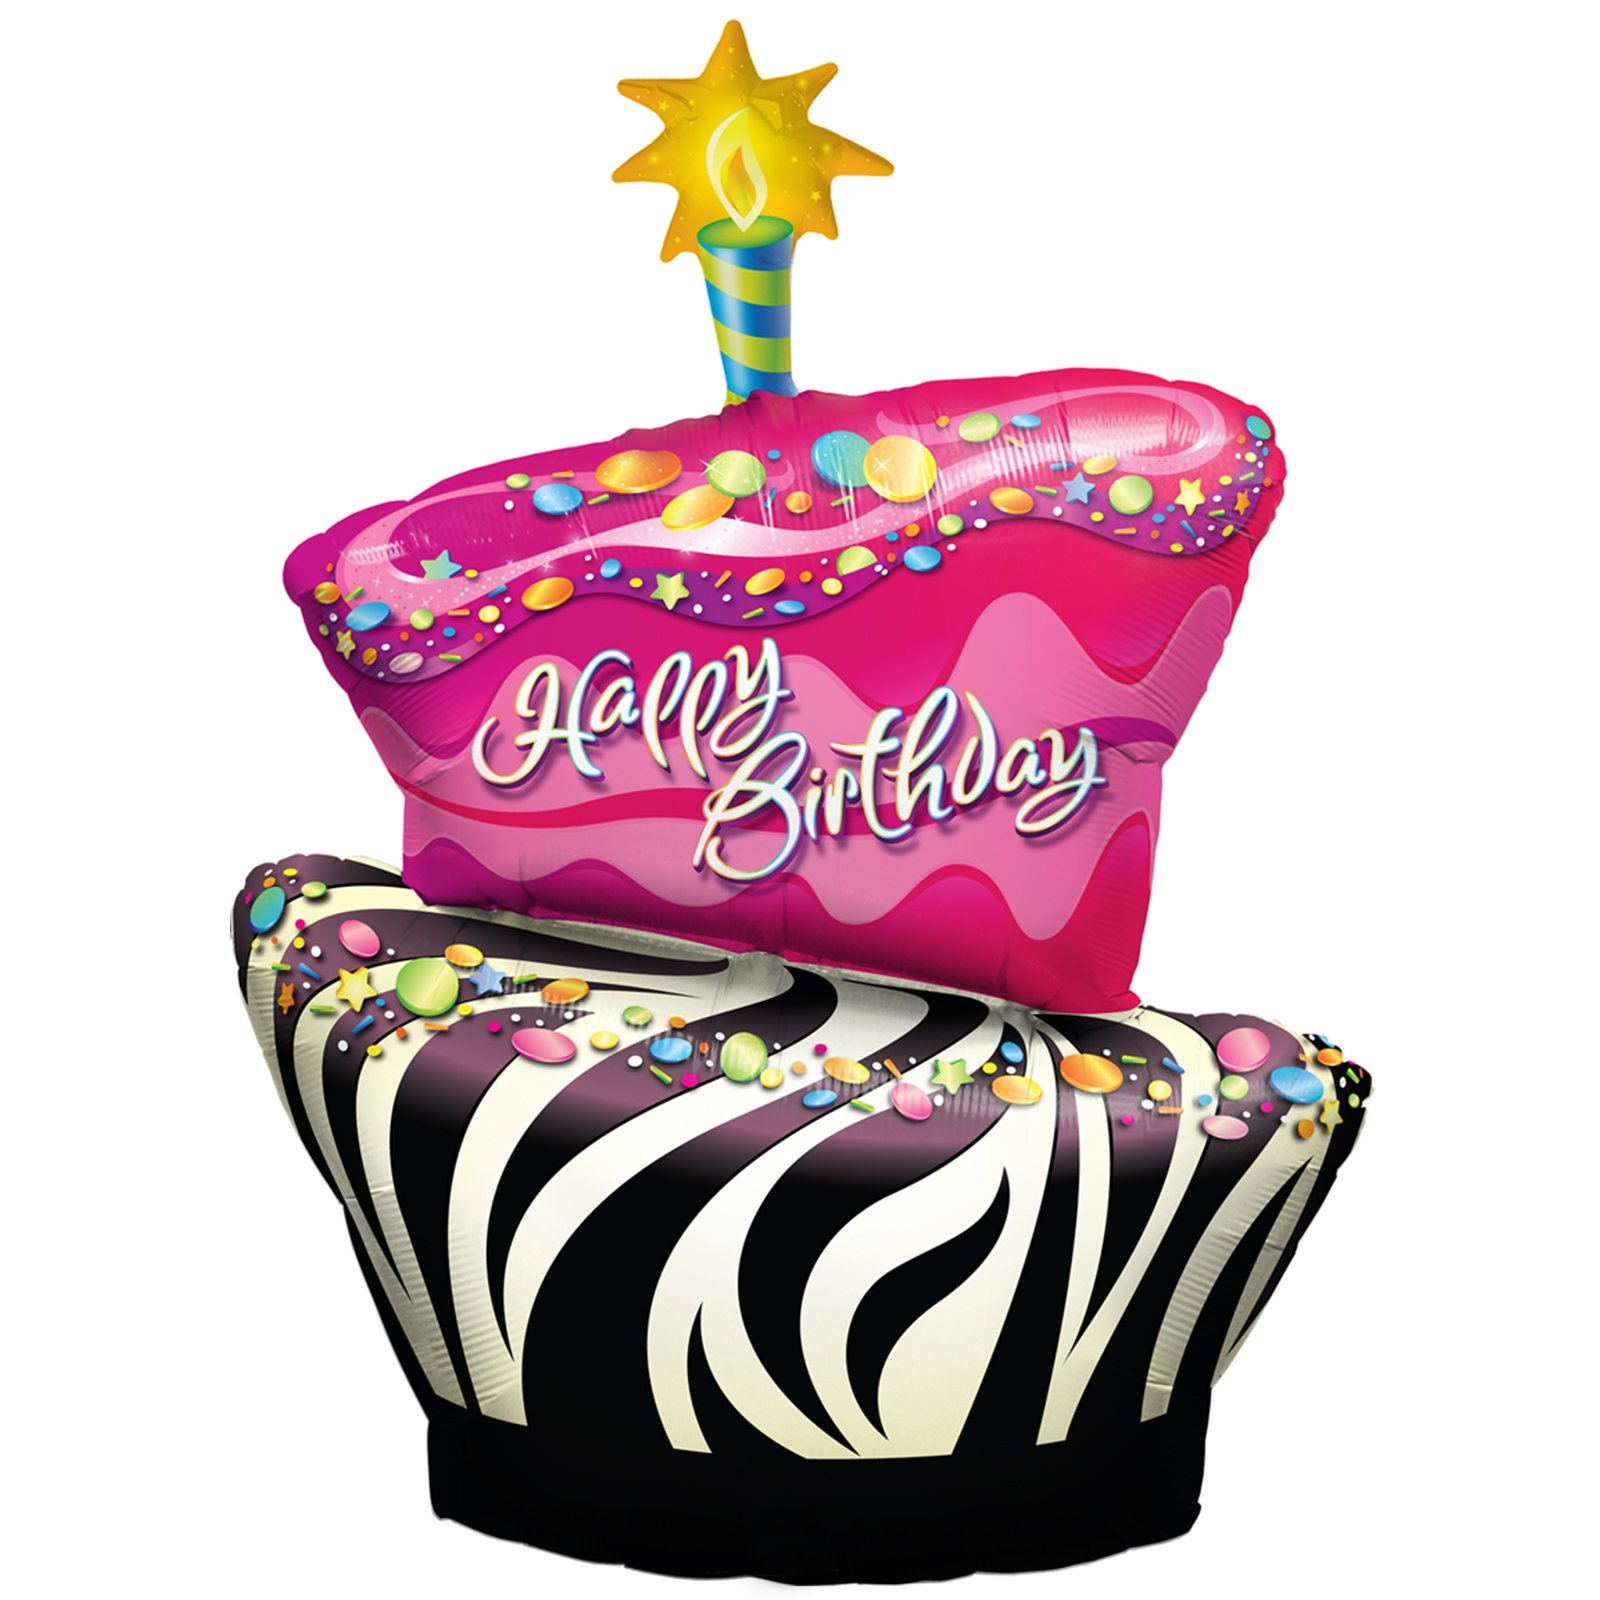 1600x1600 Top 78 Birthday Cake Clip Art